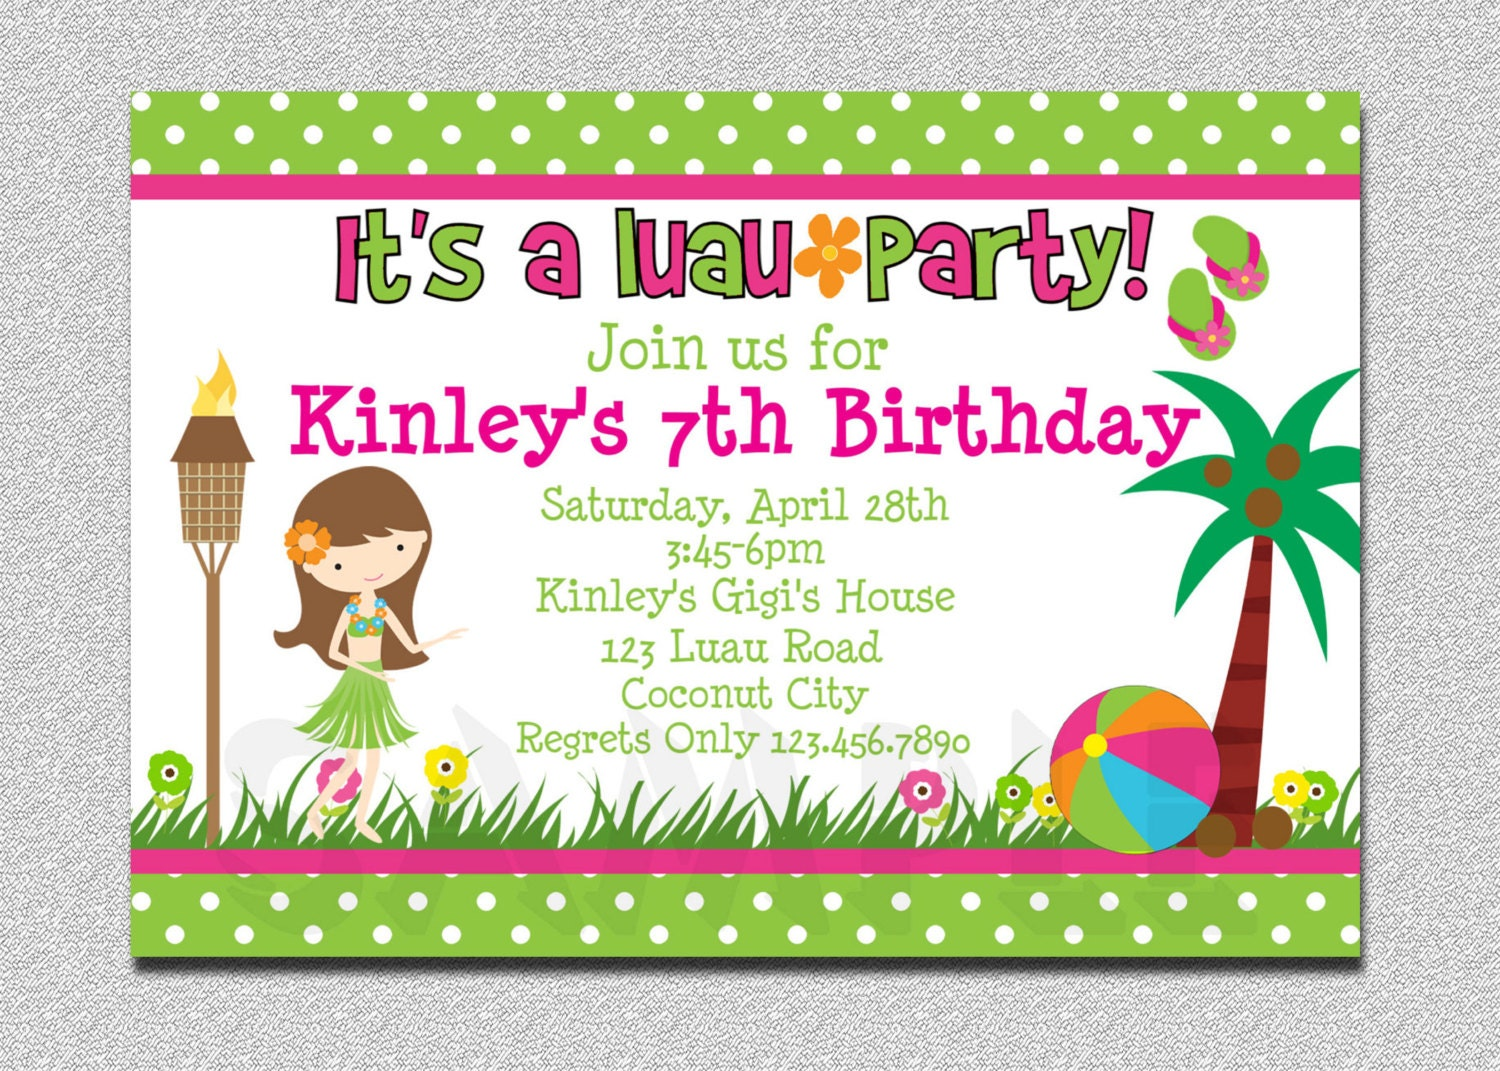 Luau Birthday Invitation Luau Birthday Party Invitation